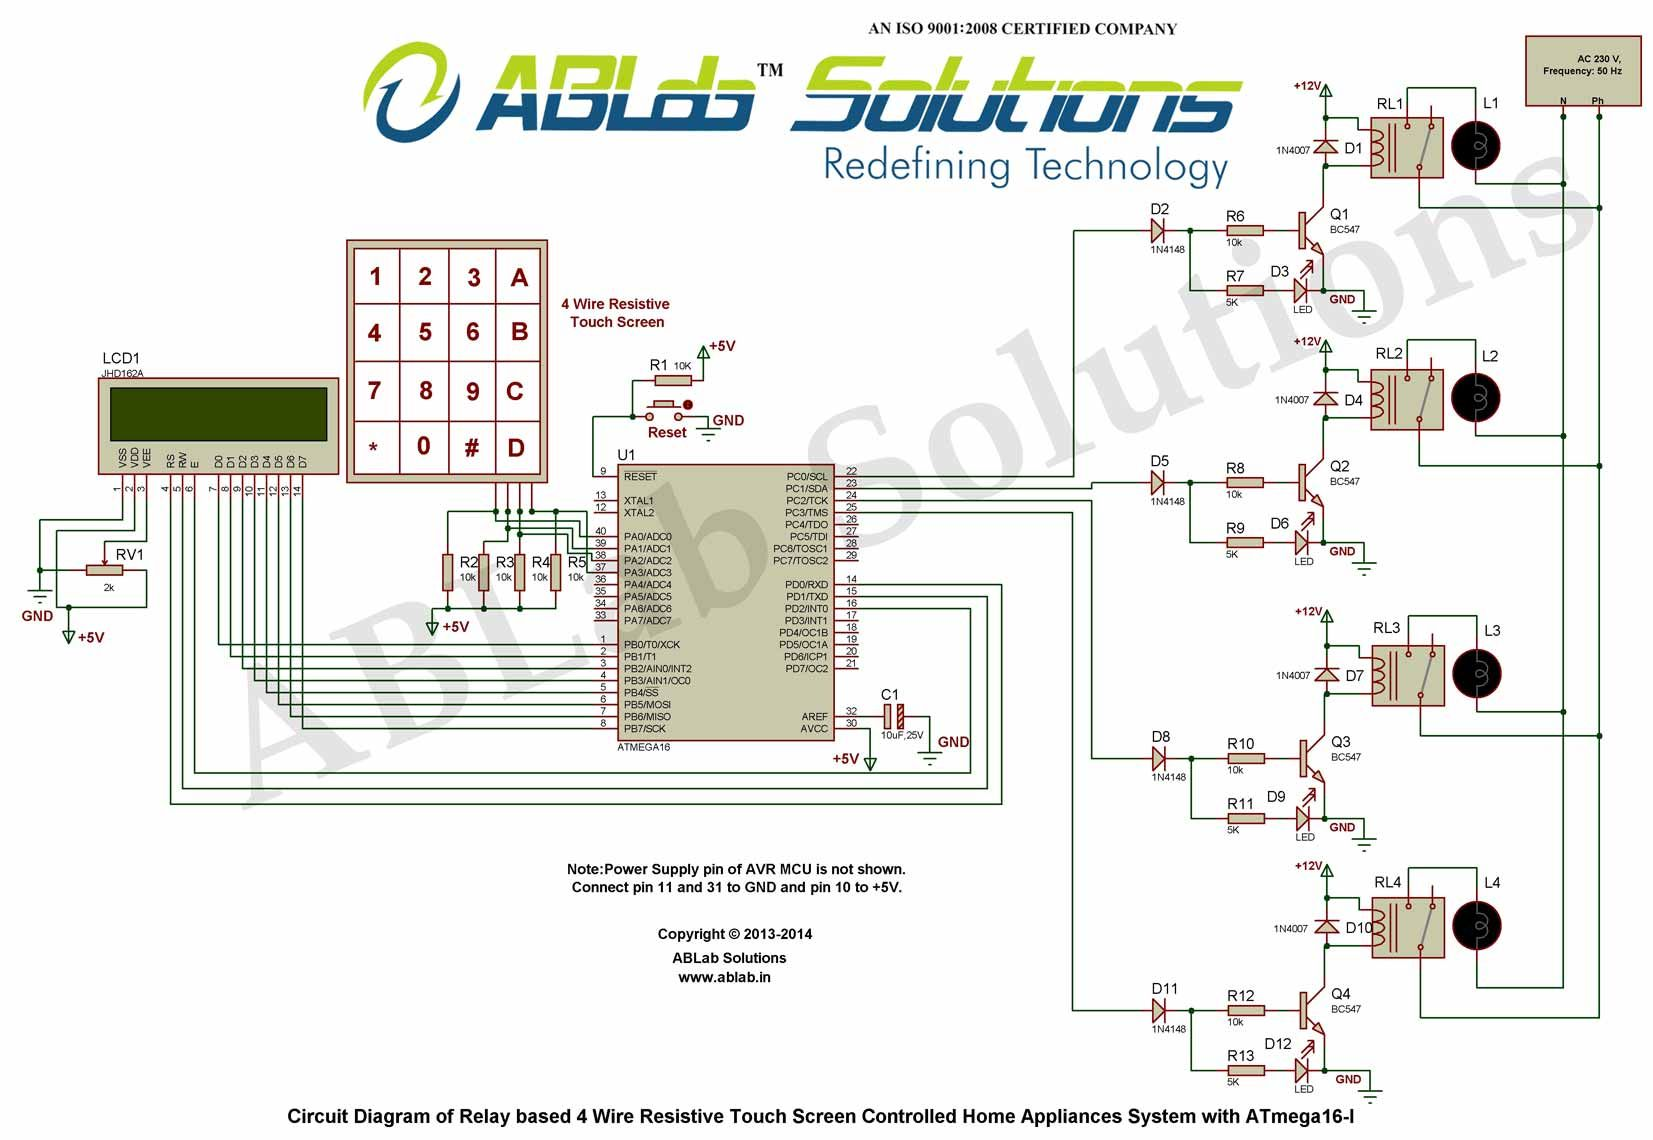 medium resolution of relay based 4 wire resistive touch screen controlled home appliances system with avr atmega16 microcontroller i circuit diagram